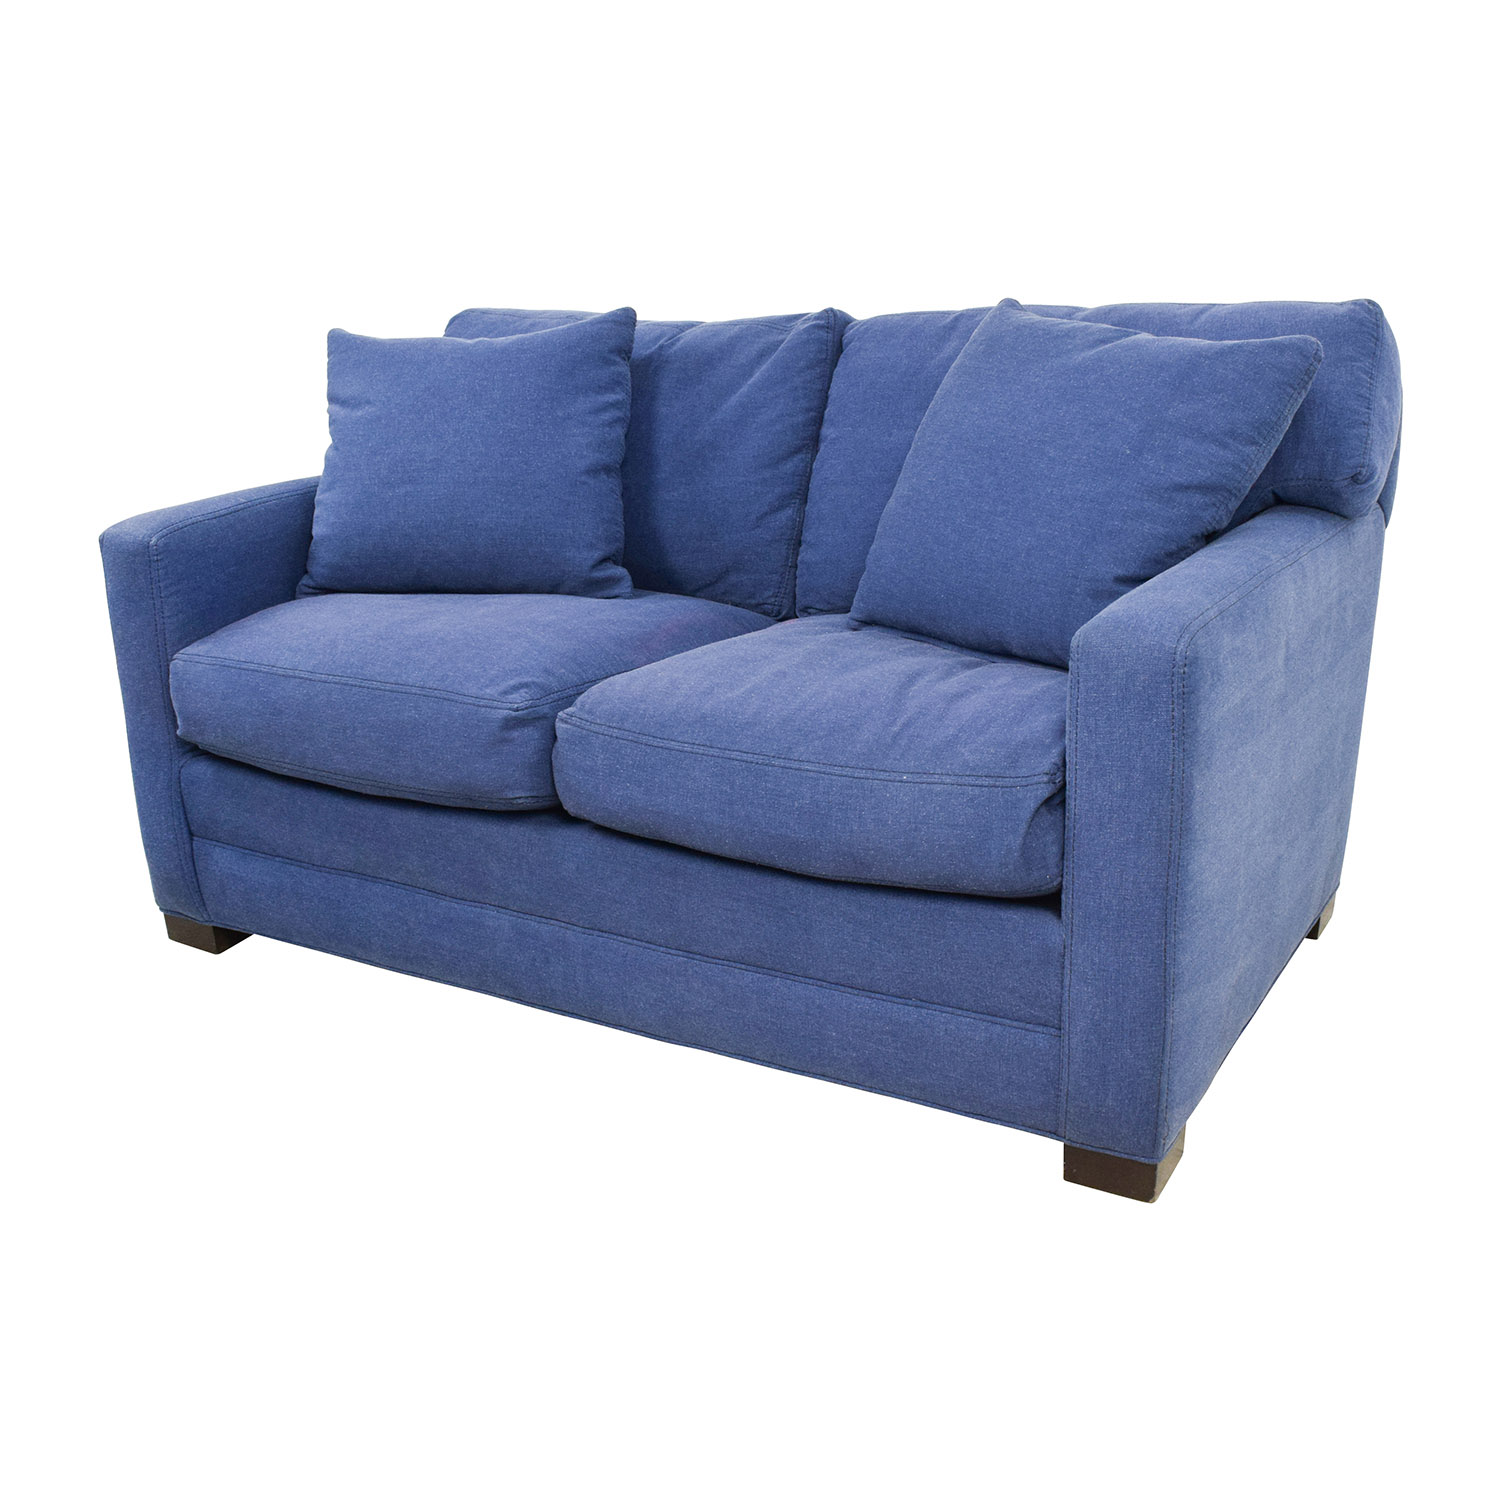 white denim sofa covers used and loveseat for sale junk gypsy blue jean chesterfield